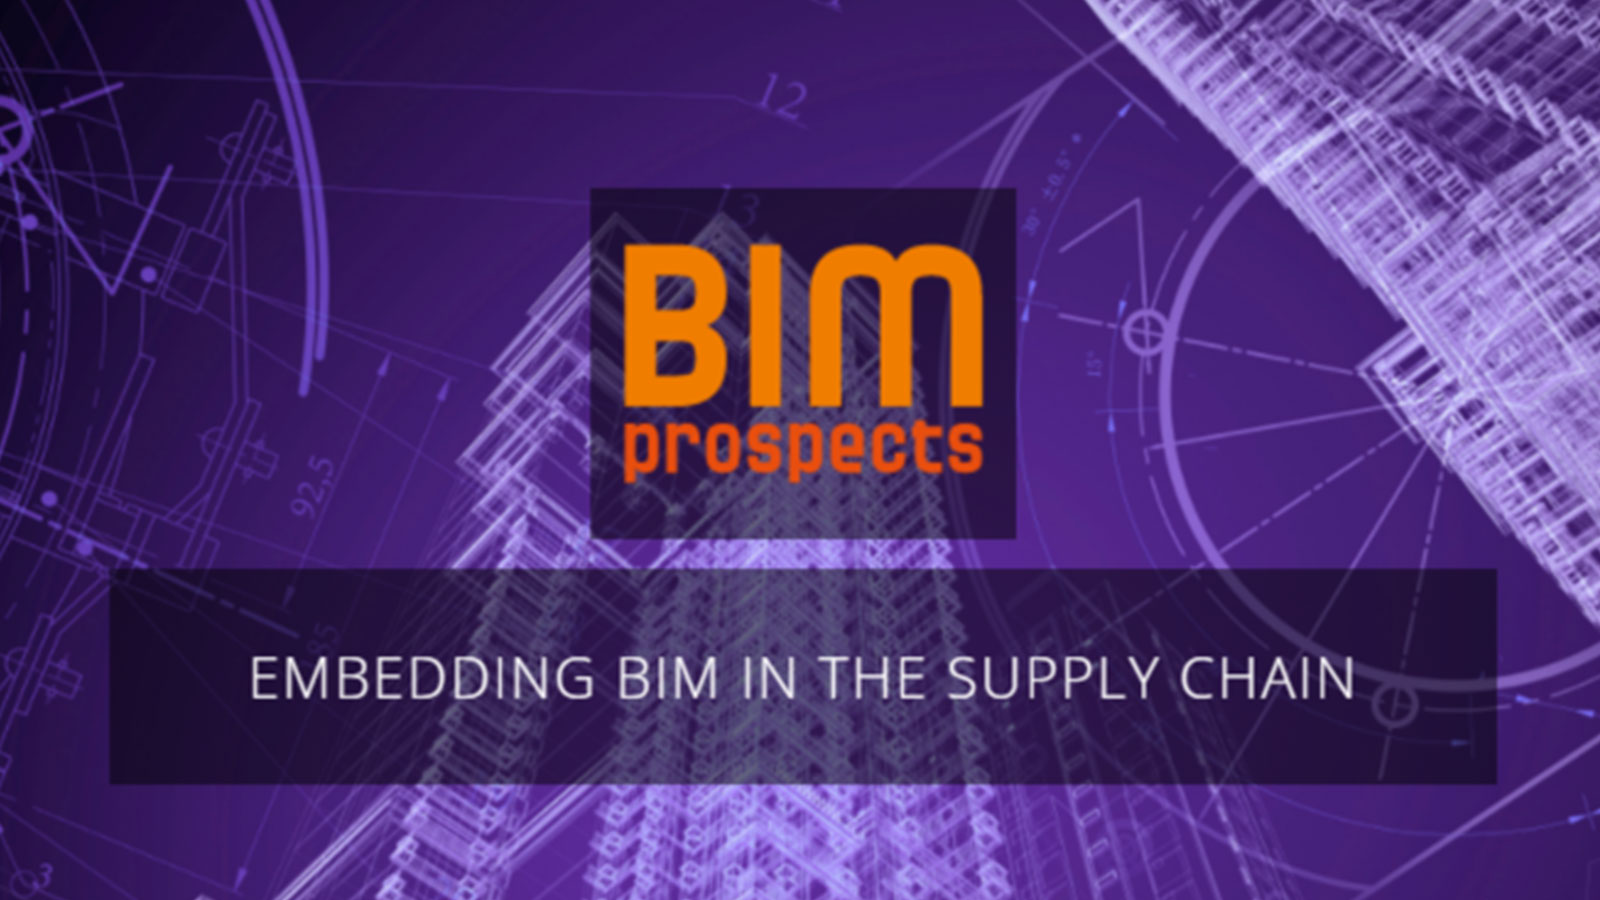 Asite's Ateam will be exhibiting at BIM Prospects 2016, 6-7 April, BRE Watford, London, UK